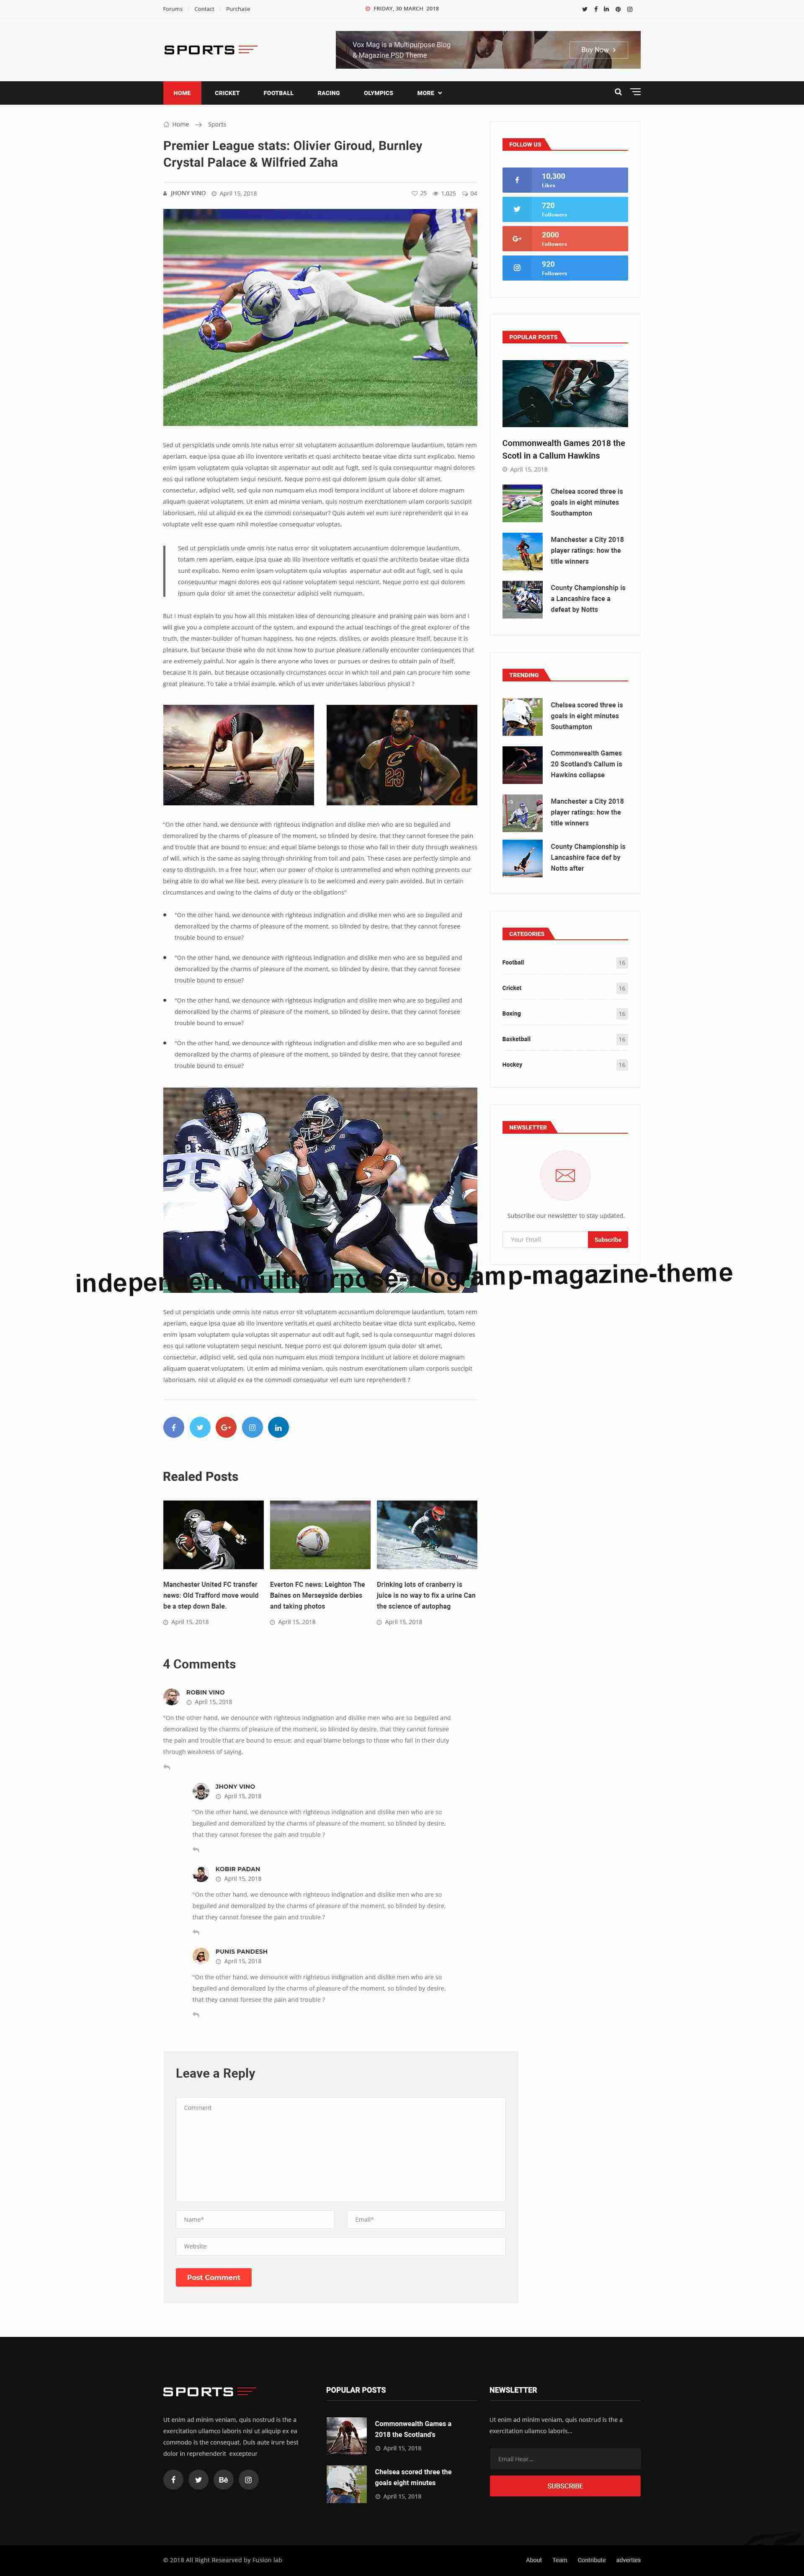 https://images.besthemes.com/images/h1_independent-multipurpose-blog-amp-magazine-theme48-_-249989416/Theme-s20s-Preview/47-Details.jpg